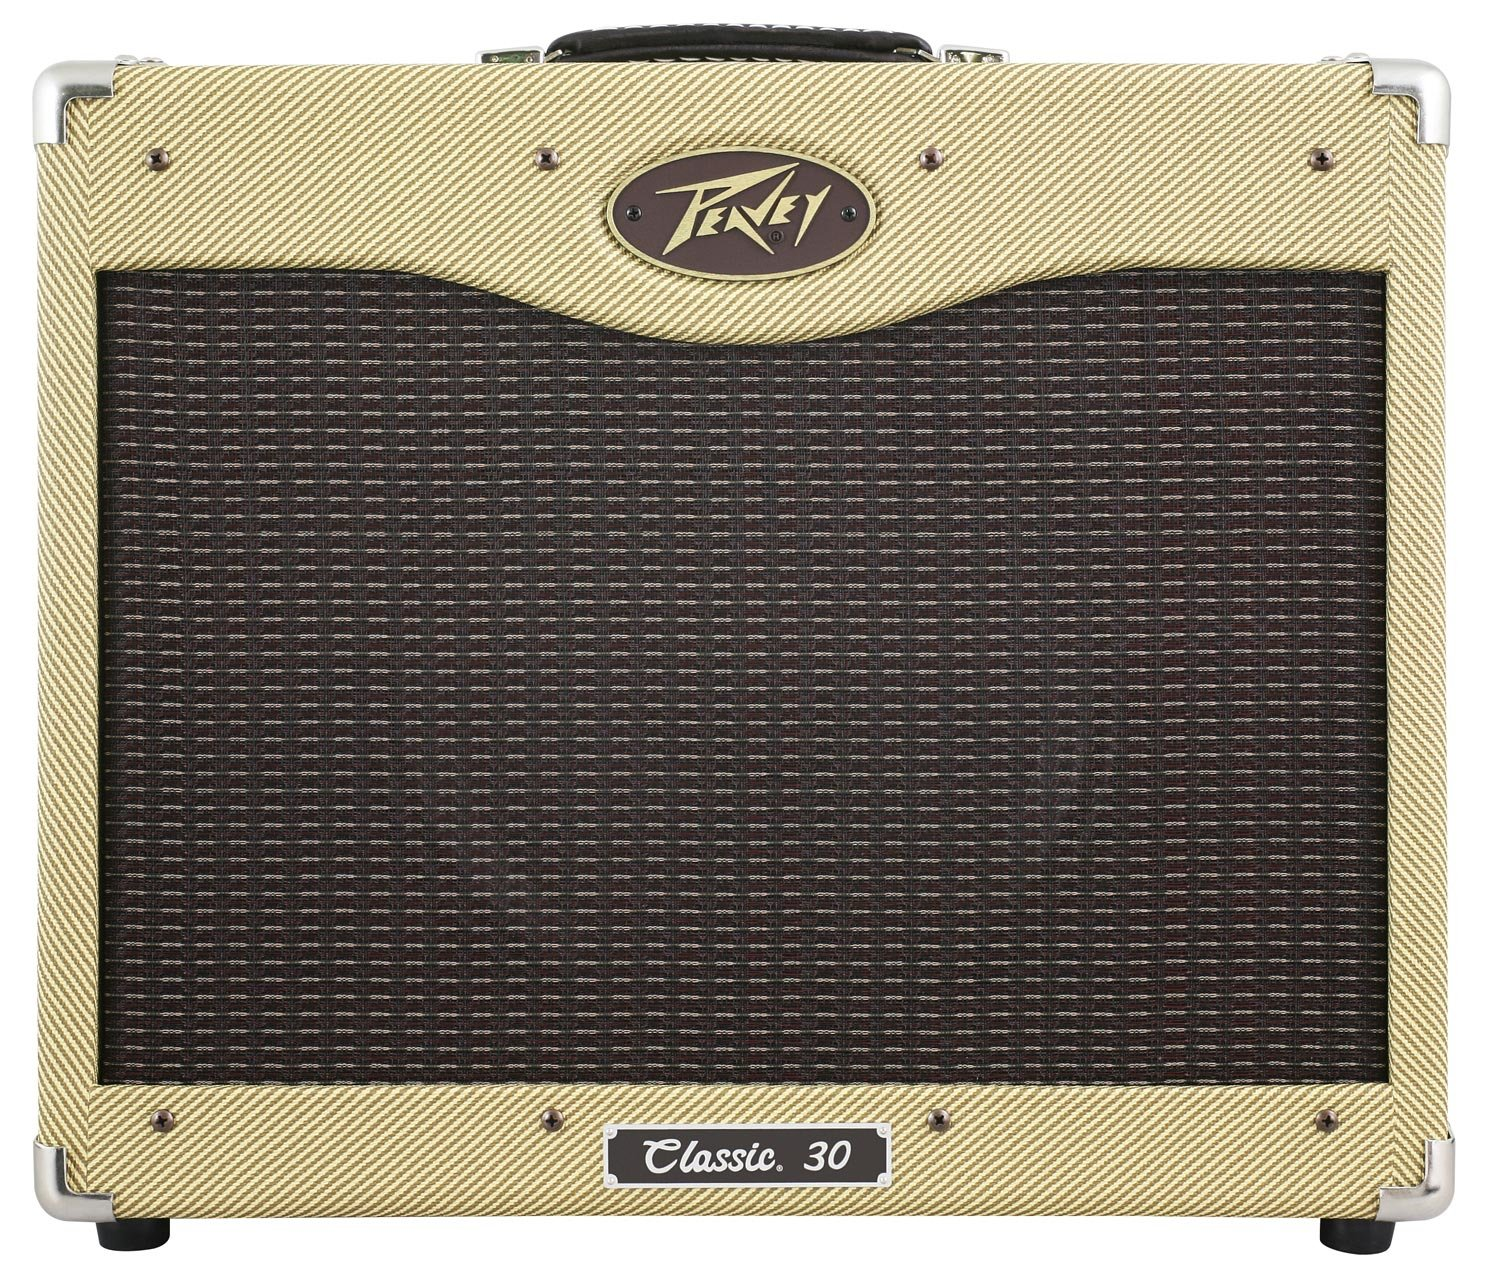 PEAVEY CLASSIC 30 112 GUITAR TUBE AMPLIFIER COMBO 1x12 30W TWEED (03602930)